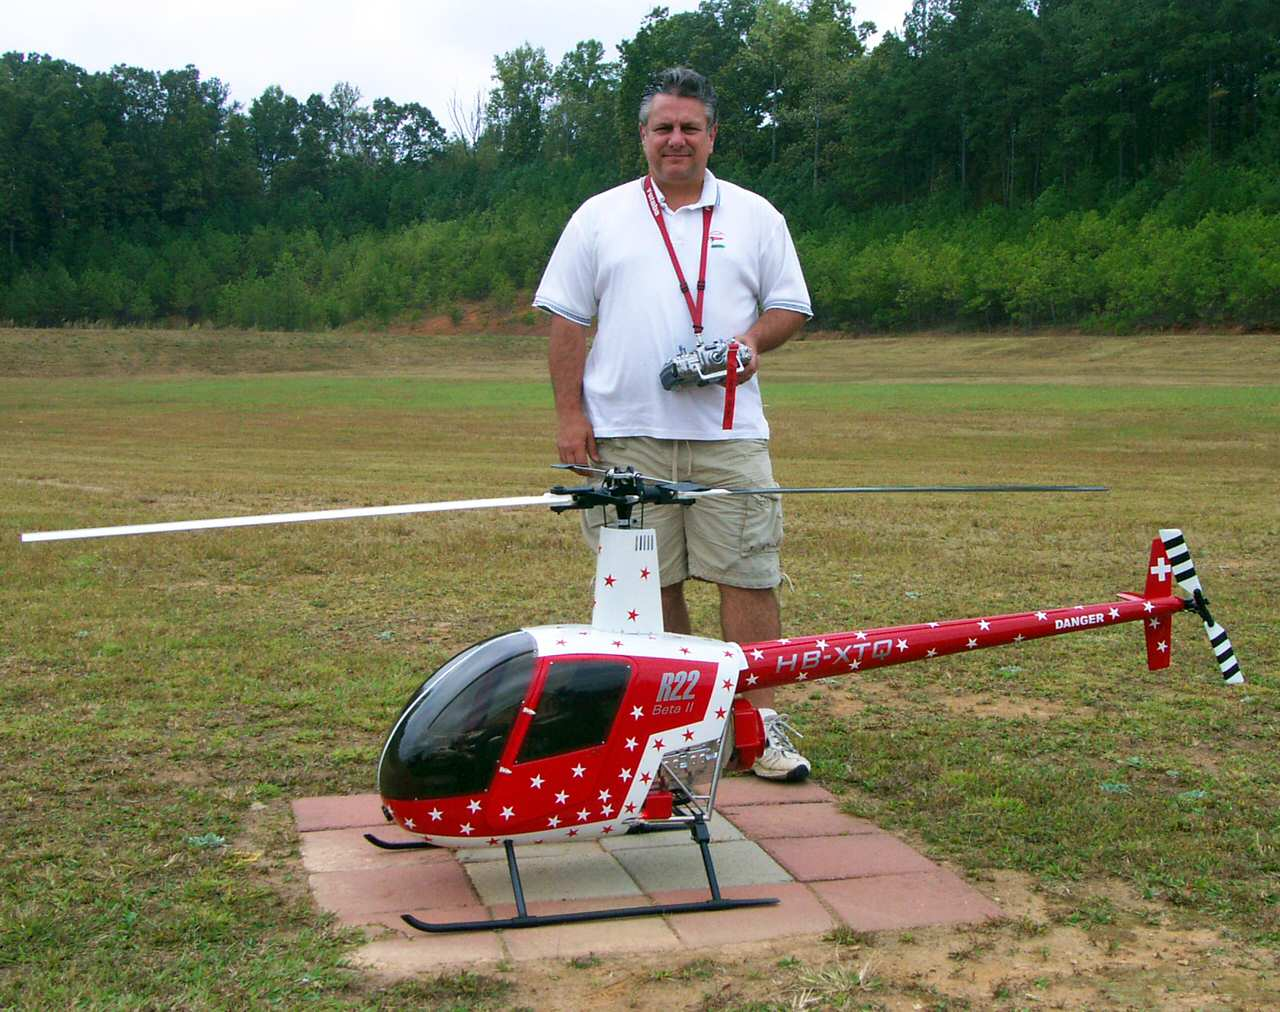 air hogs heli cage with Rc Helicopter Videos Site Youtube  Video on New Air Hogs Toys 2013 additionally Review Air Hogs Rc Hover Assault furthermore 33057966 moreover A 15068626 additionally 3200116.